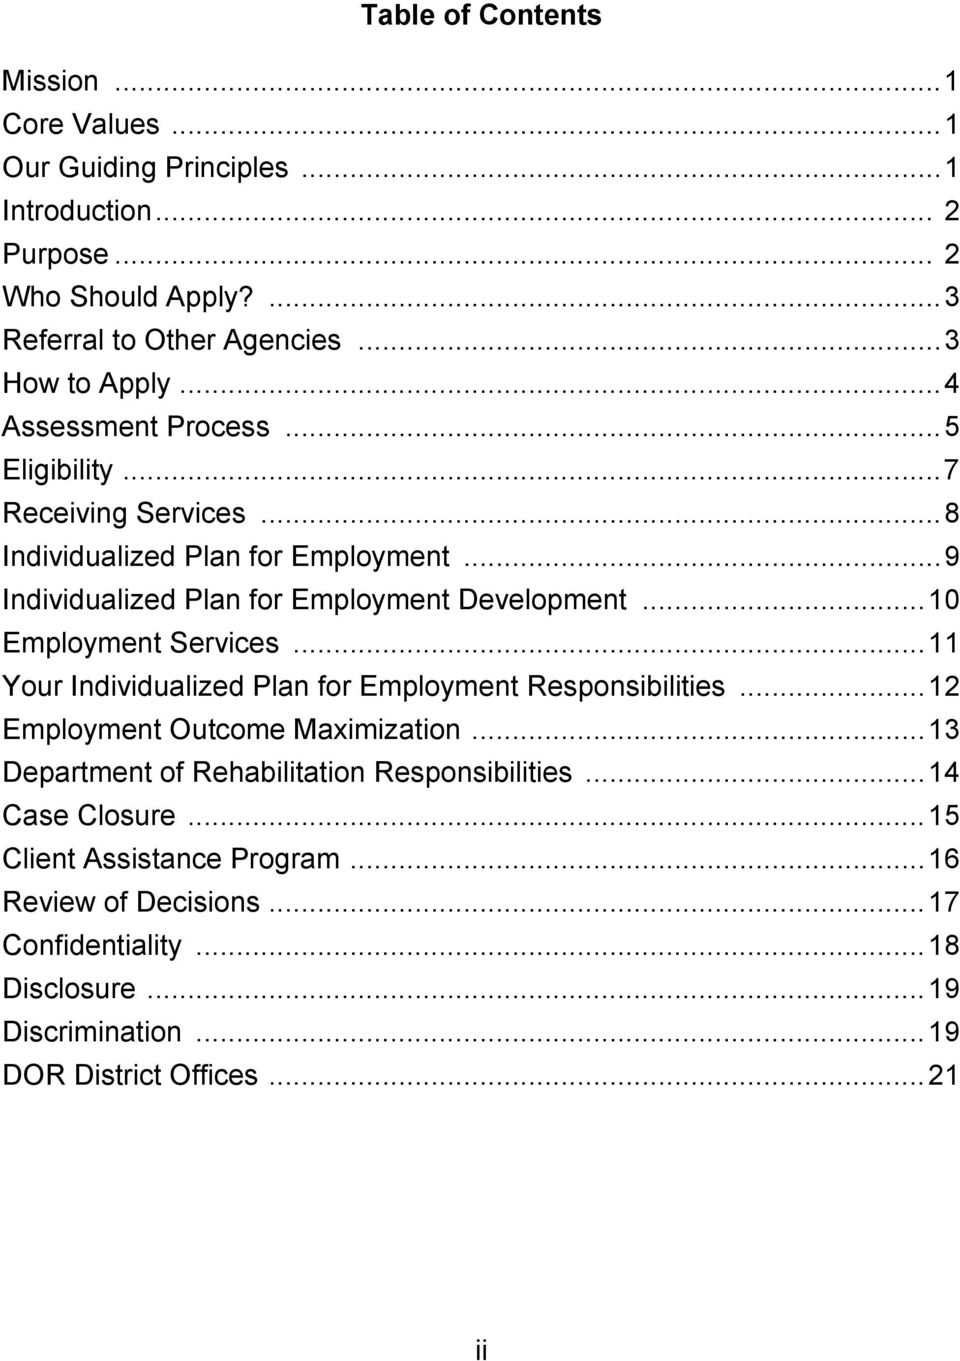 .. 9 Individualized Plan for Employment Development... 10 Employment Services... 11 Your Individualized Plan for Employment Responsibilities.